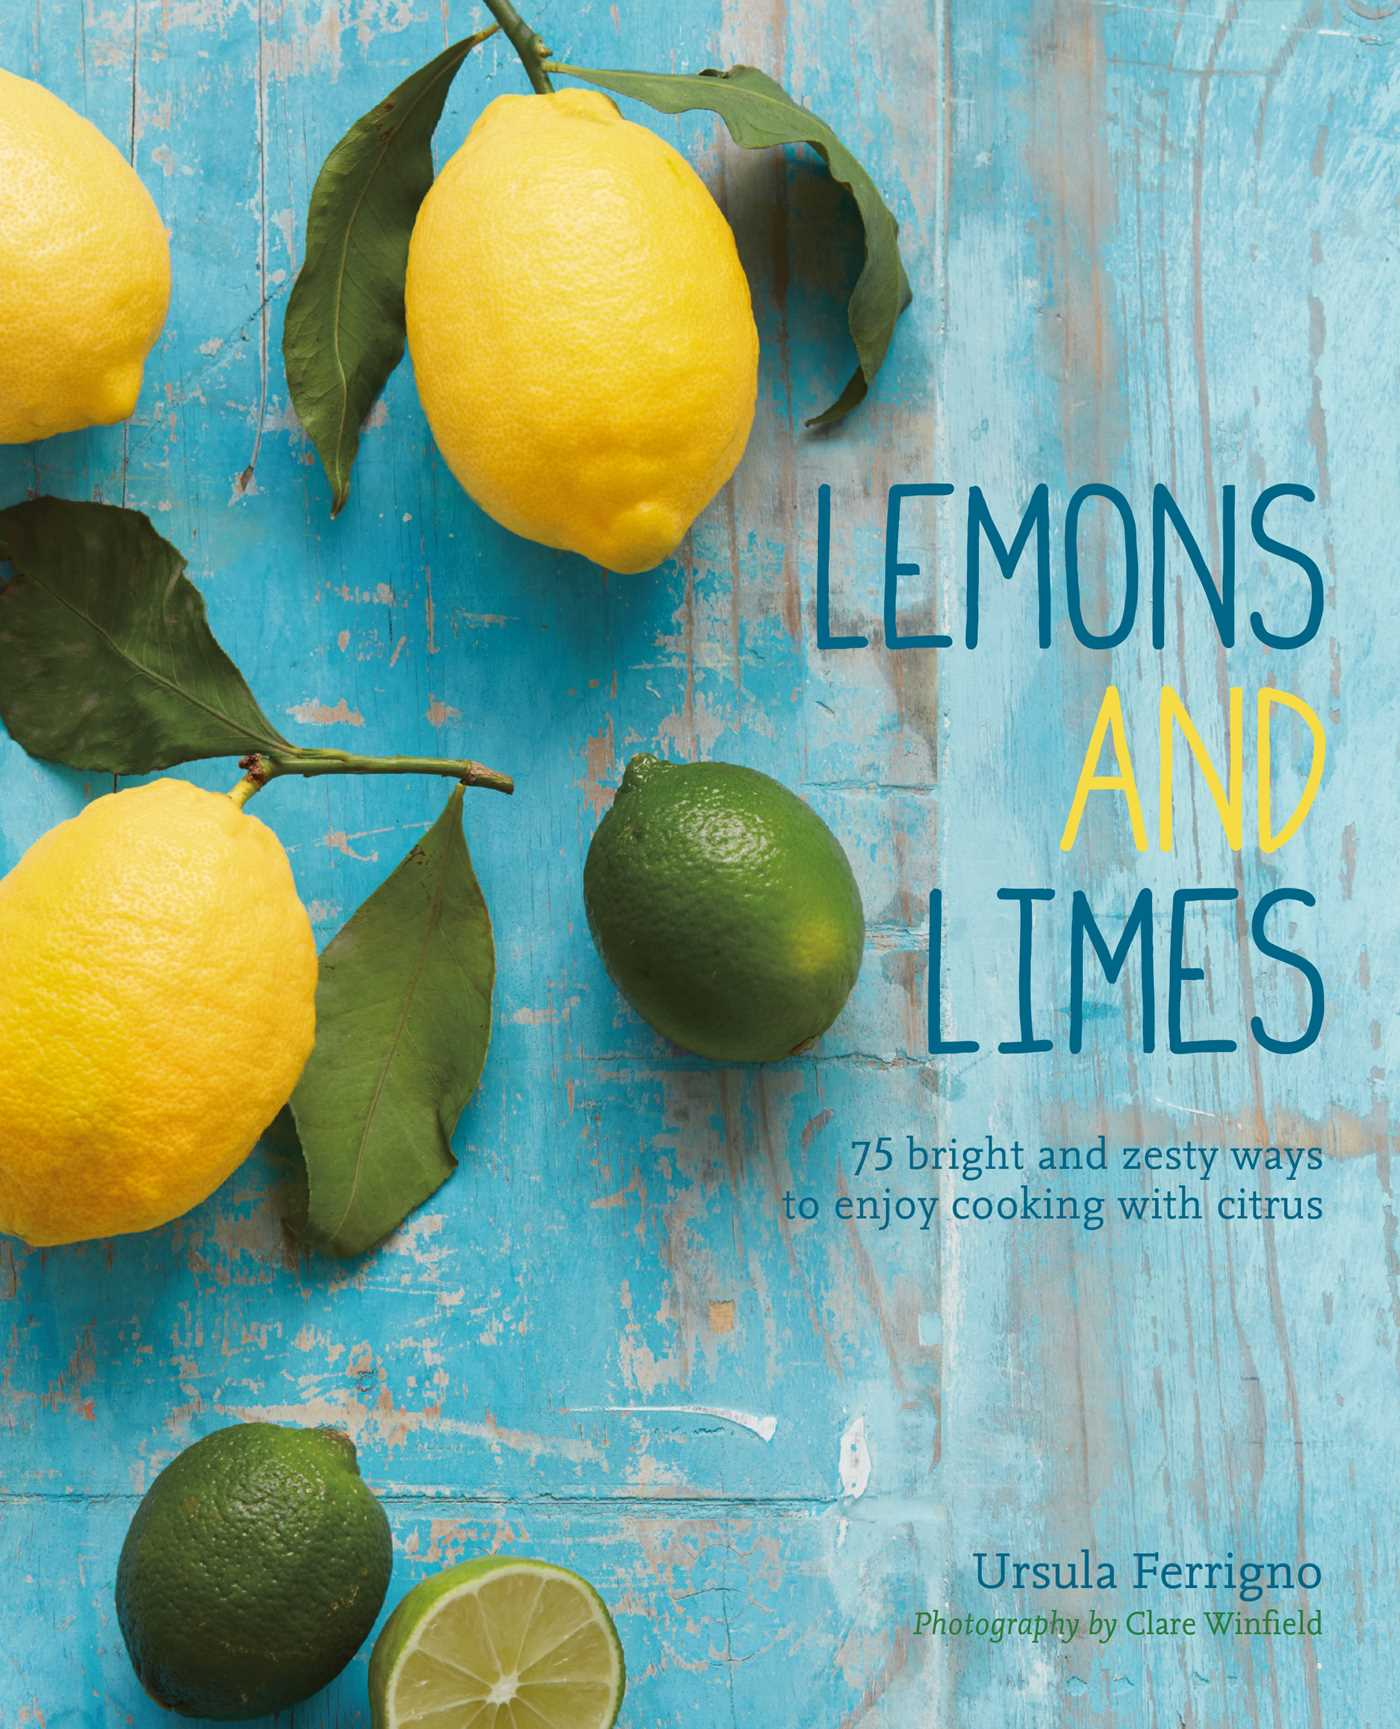 Lemons and limes 9781849758062 hr